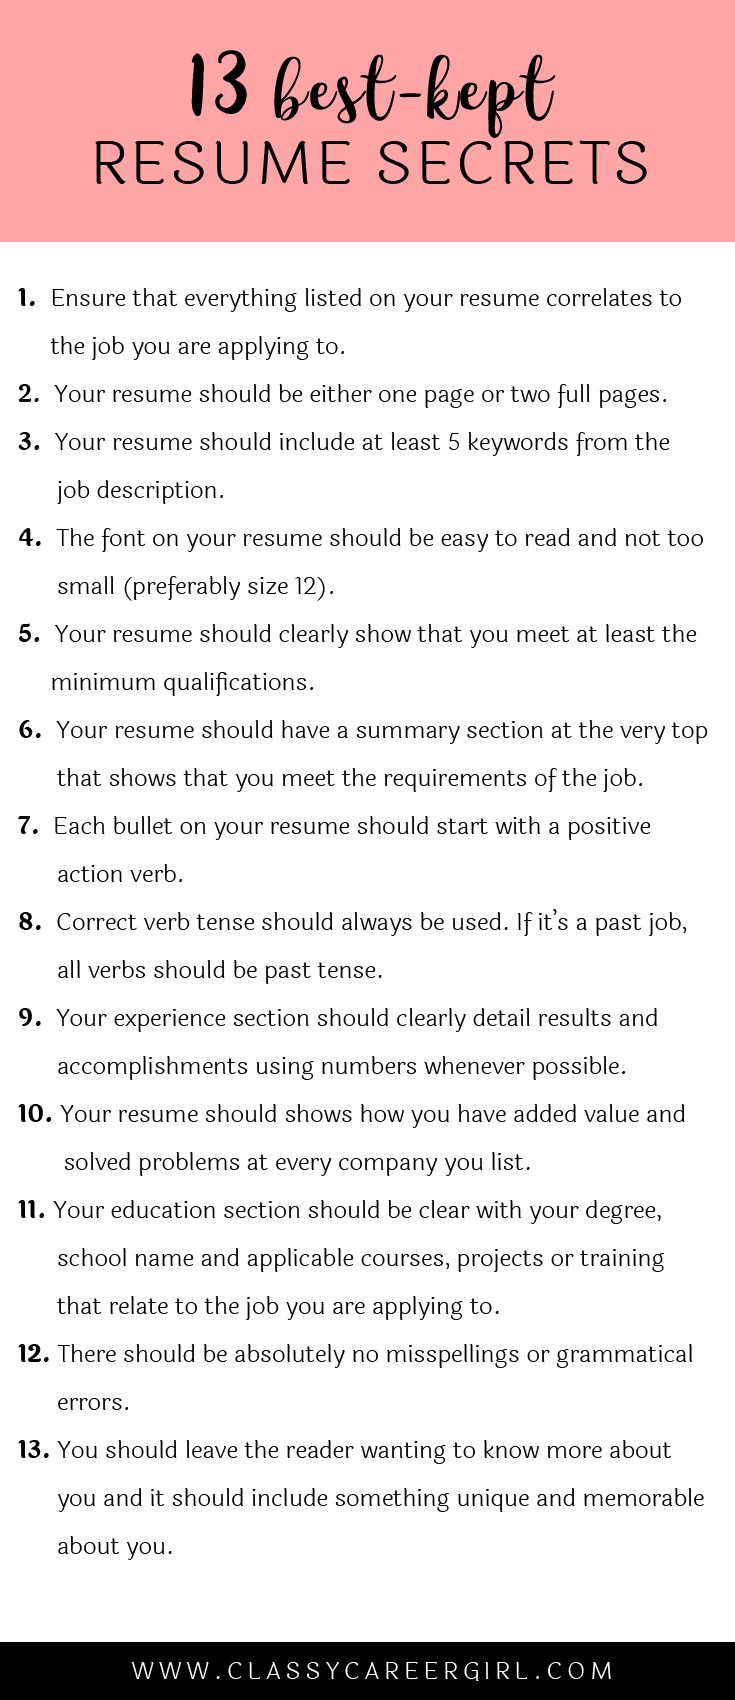 Opposenewapstandardsus  Wonderful  Ideas About Resume On Pinterest  Cv Format Resume Cv And  With Entrancing Some Hiring Managers Will Toss Your Resume Out If You Dont Know These  With Charming Hiring Manager Resume Also Resume Weaknesses In Addition Sales Associate Resume Samples And Resume Summary Of Skills As Well As Free Resume Samples Download Additionally How To Make A Resume College Student From Pinterestcom With Opposenewapstandardsus  Entrancing  Ideas About Resume On Pinterest  Cv Format Resume Cv And  With Charming Some Hiring Managers Will Toss Your Resume Out If You Dont Know These  And Wonderful Hiring Manager Resume Also Resume Weaknesses In Addition Sales Associate Resume Samples From Pinterestcom